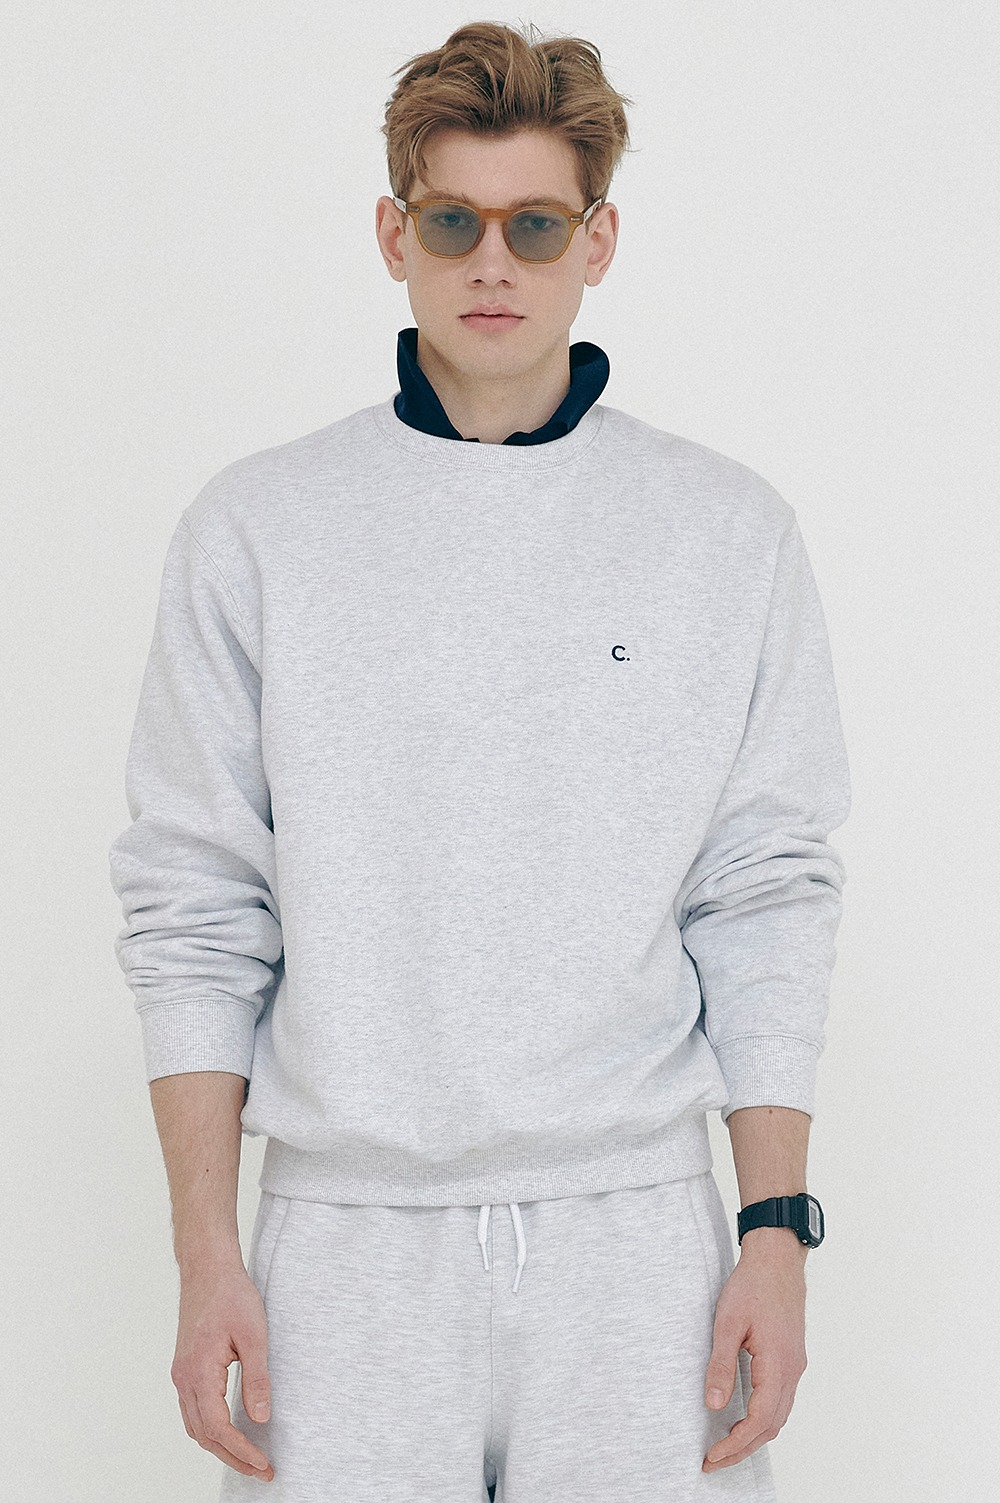 clove - Active Sweatshirts_Men (Light Grey)